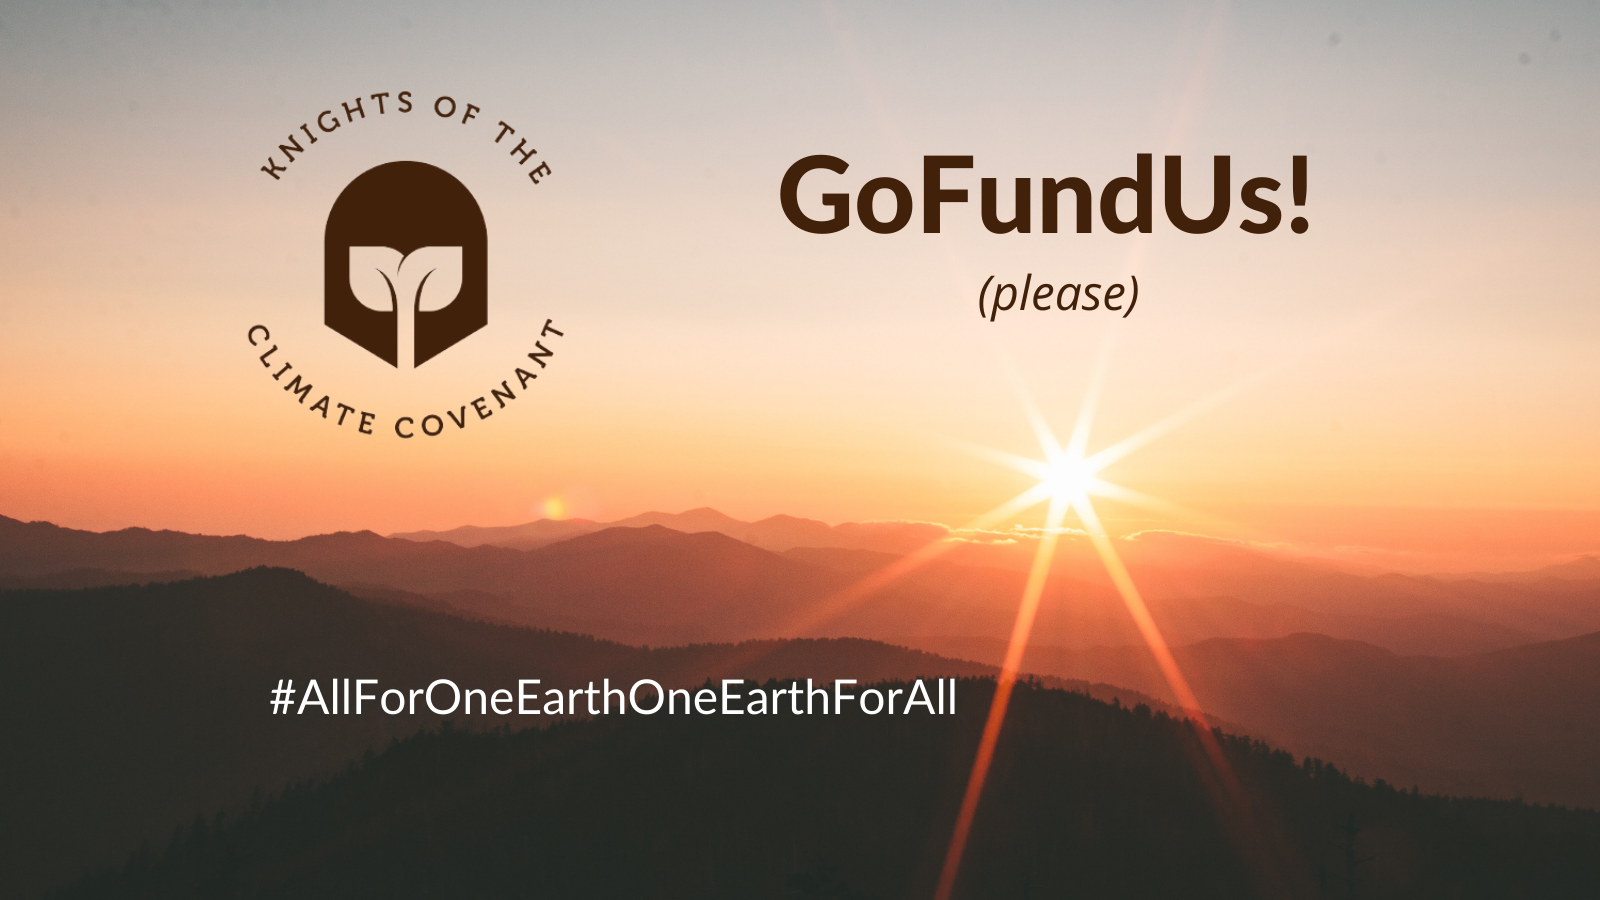 A graphic promoting a GoFundMe campaign